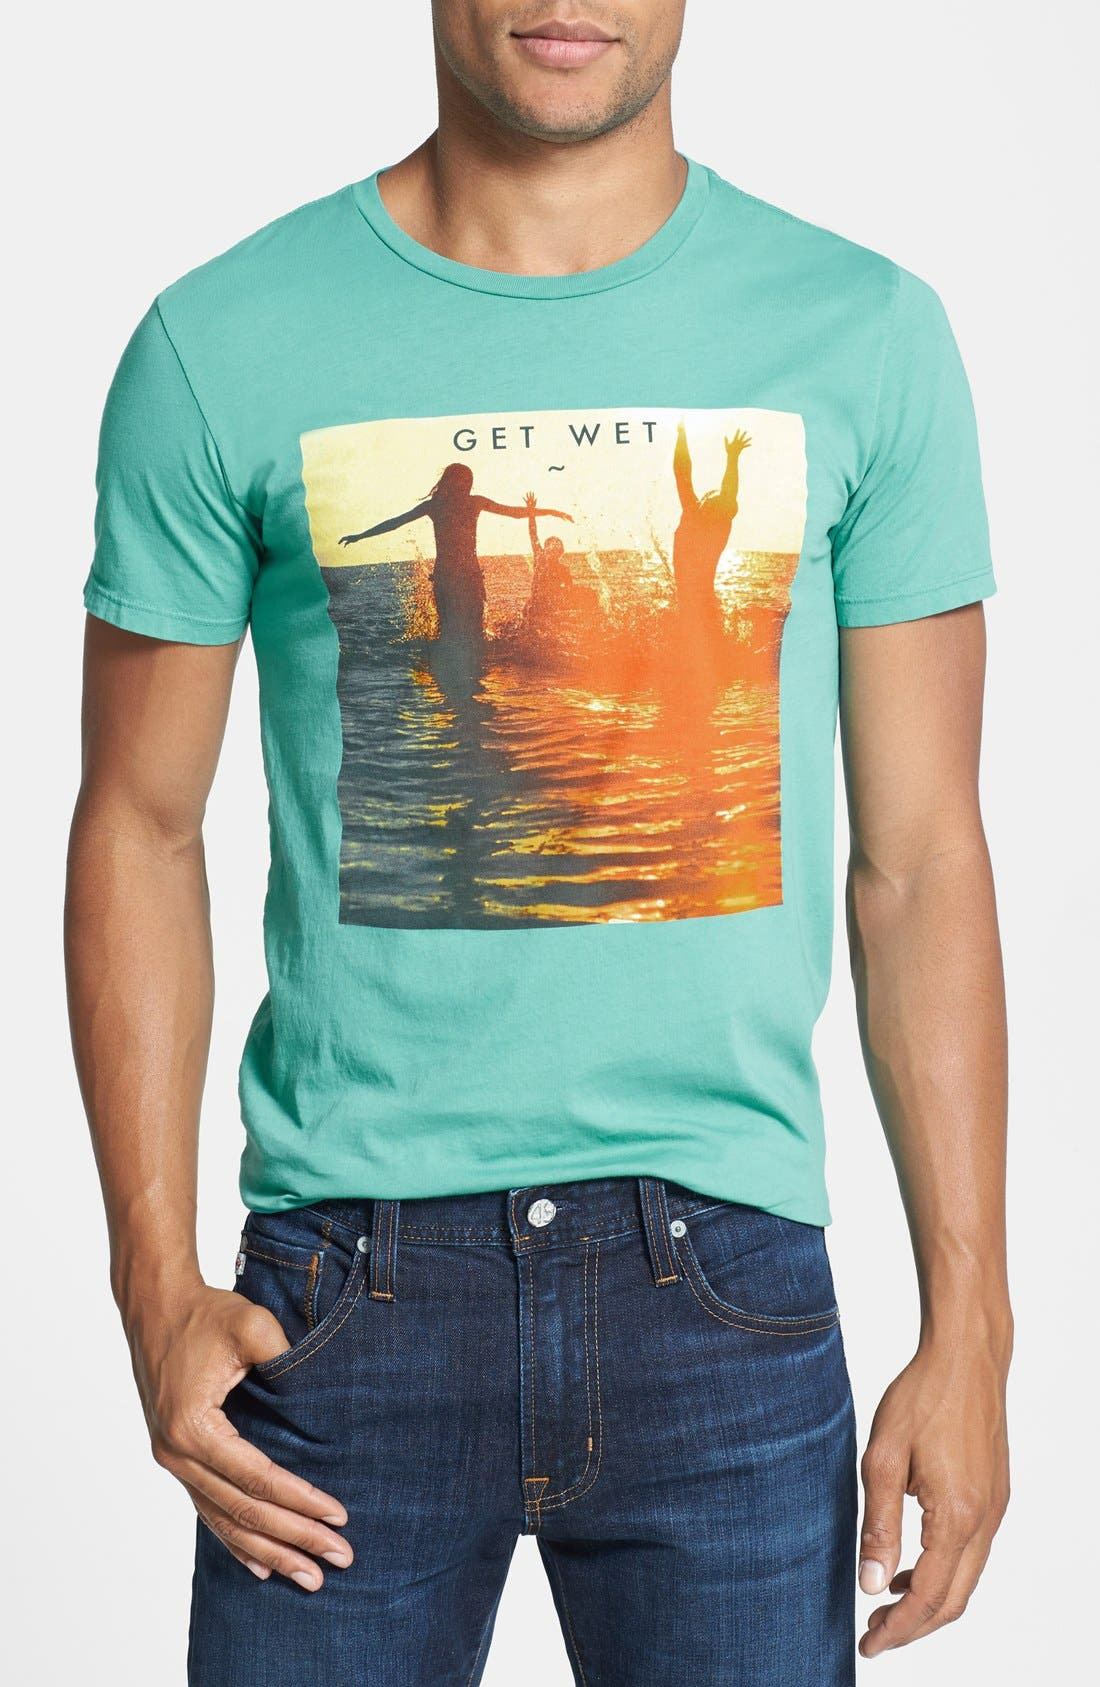 Main Image - Altru 'Get Wet' Graphic T-Shirt